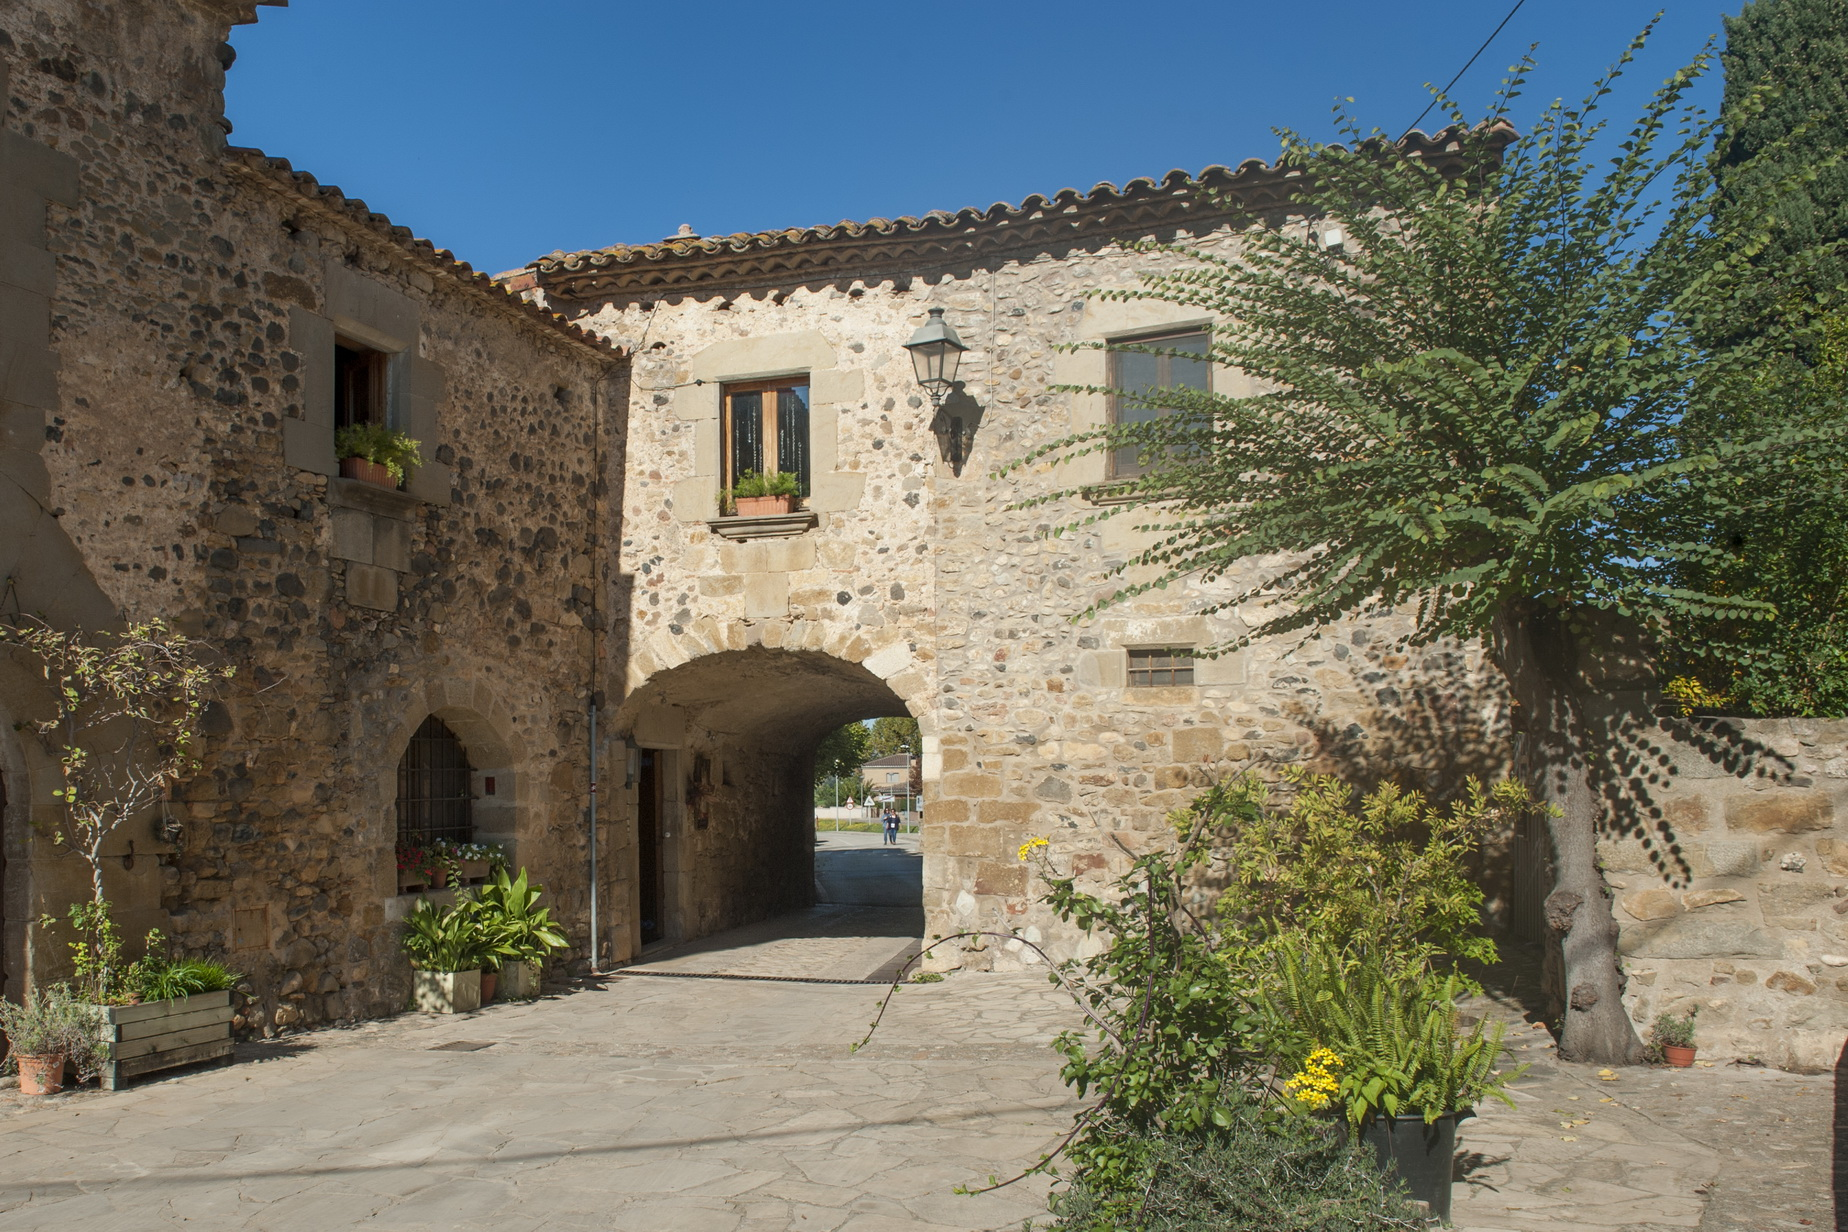 Single Family Home for Sale at XVII Century beautiful historic house, in the centre of Pubol Other Cities Baix Emporda, Barcelona, 17001 Spain